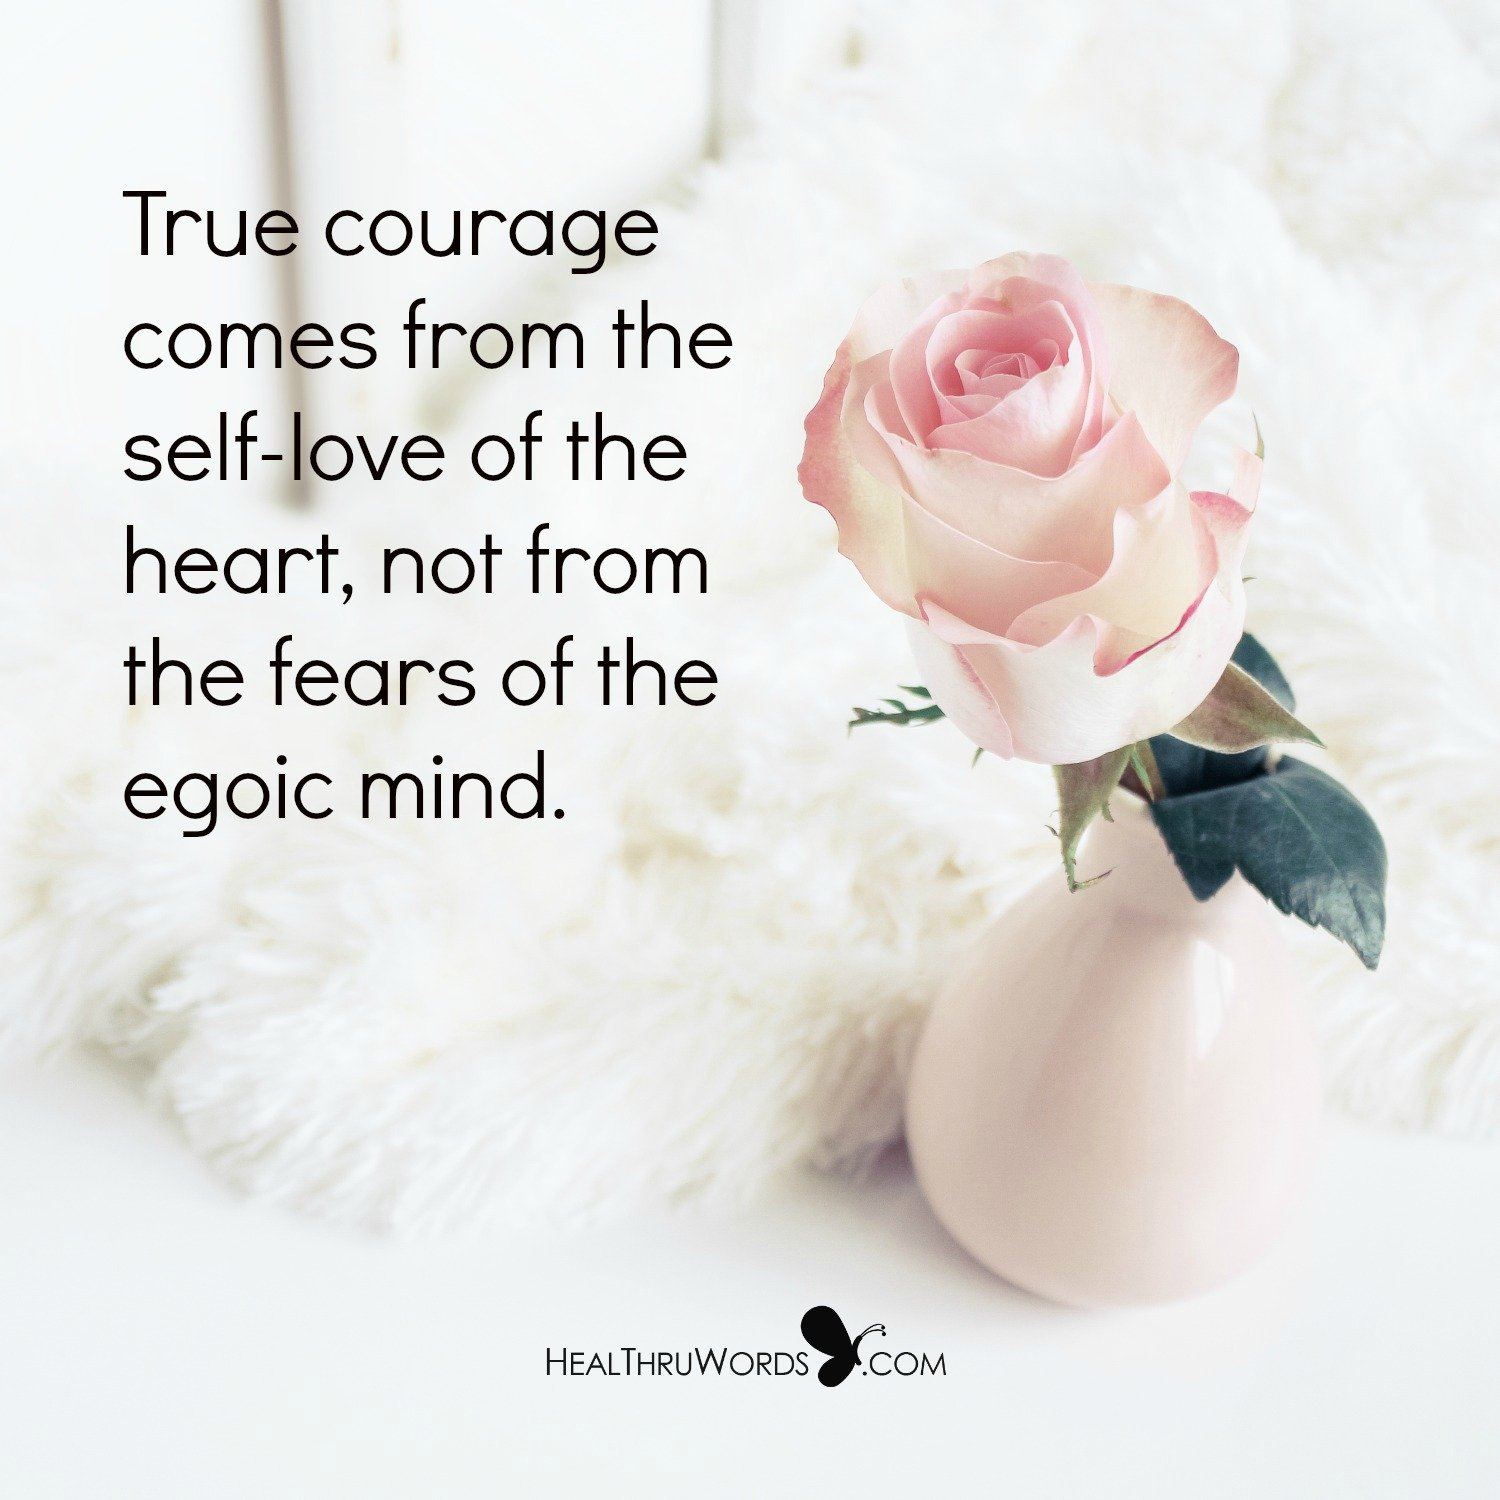 Inspirational Image: Self-love is Courageous